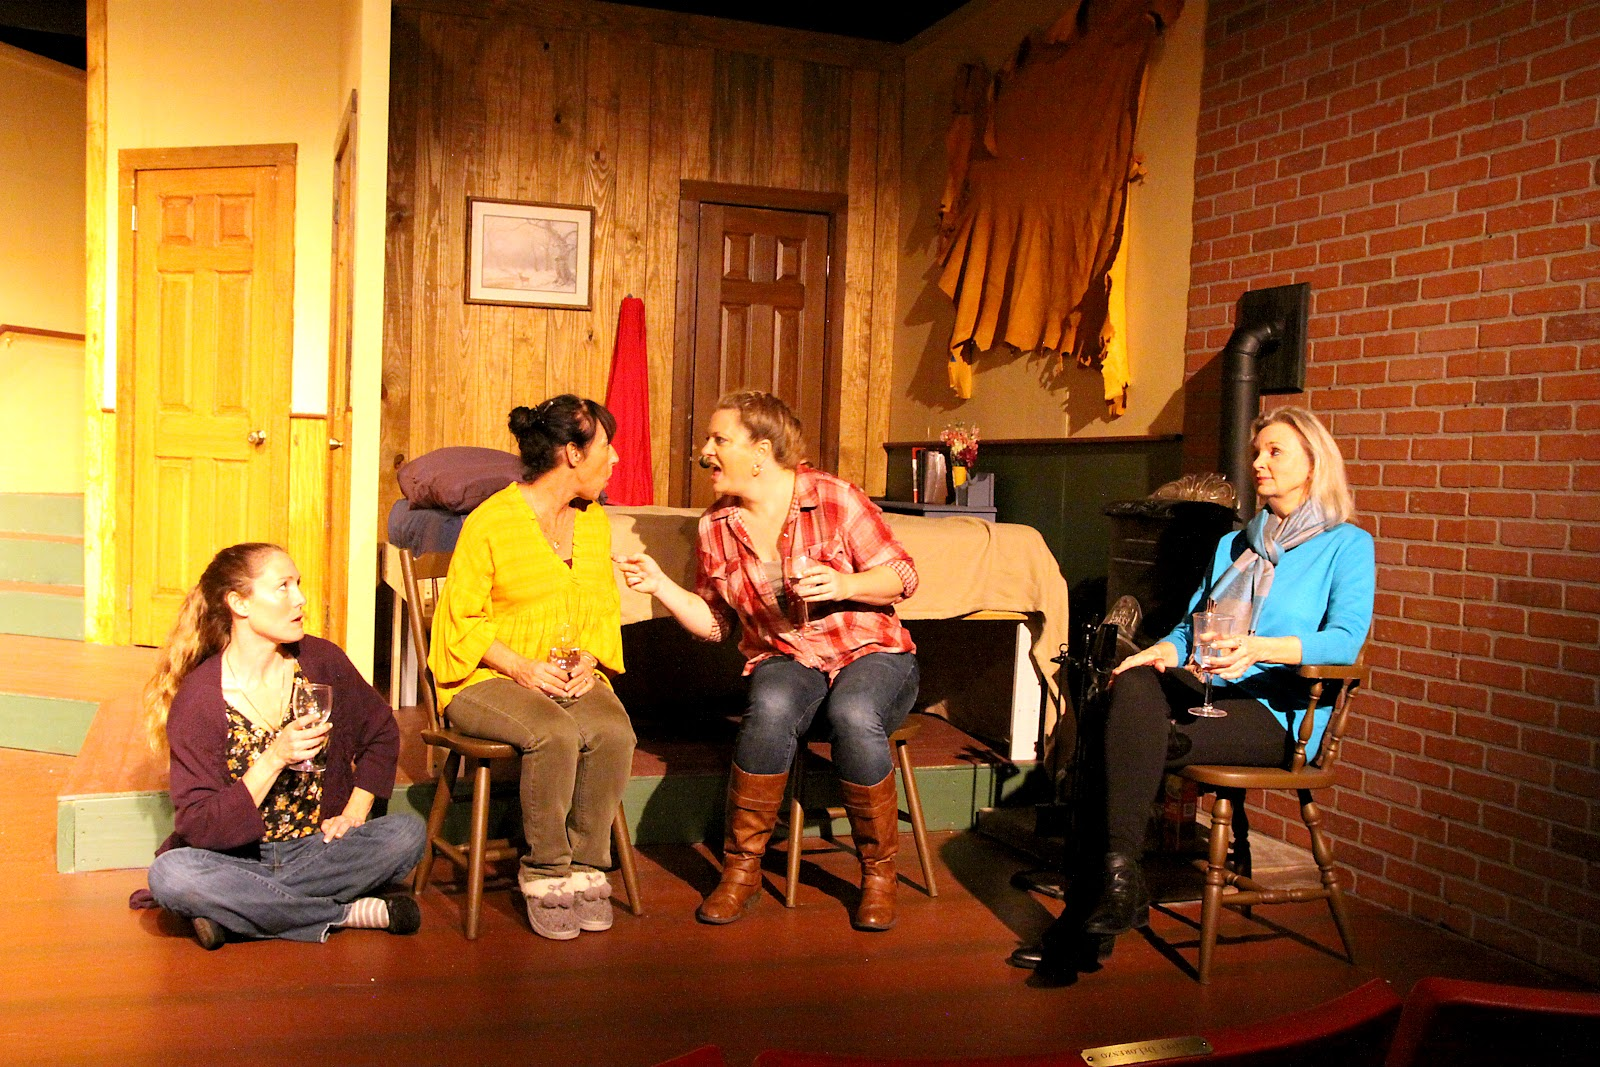 REVIEW: Limelight Theatre's Girls' Weekend leaves audiences howling with laughter